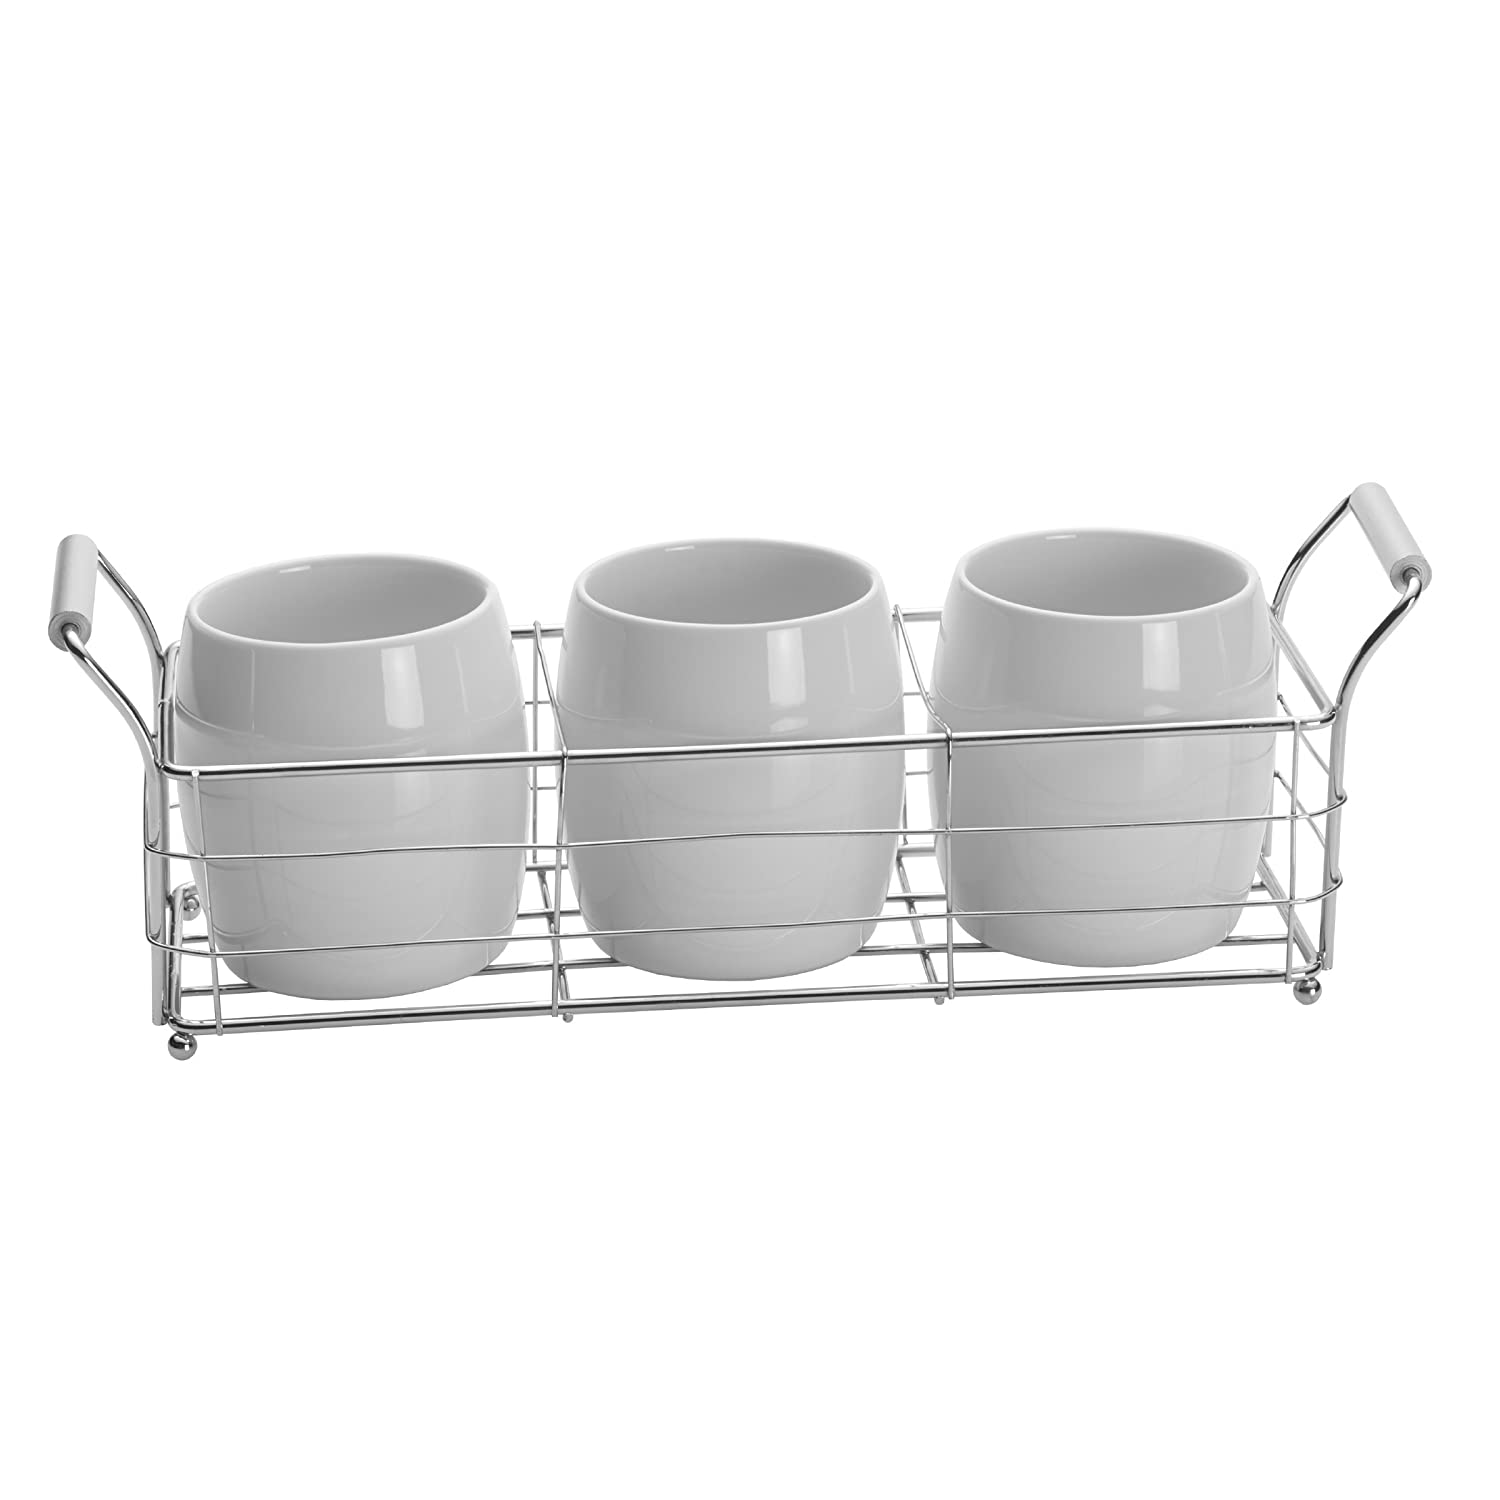 Towle Living Ceramic Wire Flatware Caddy Set, White 5135136